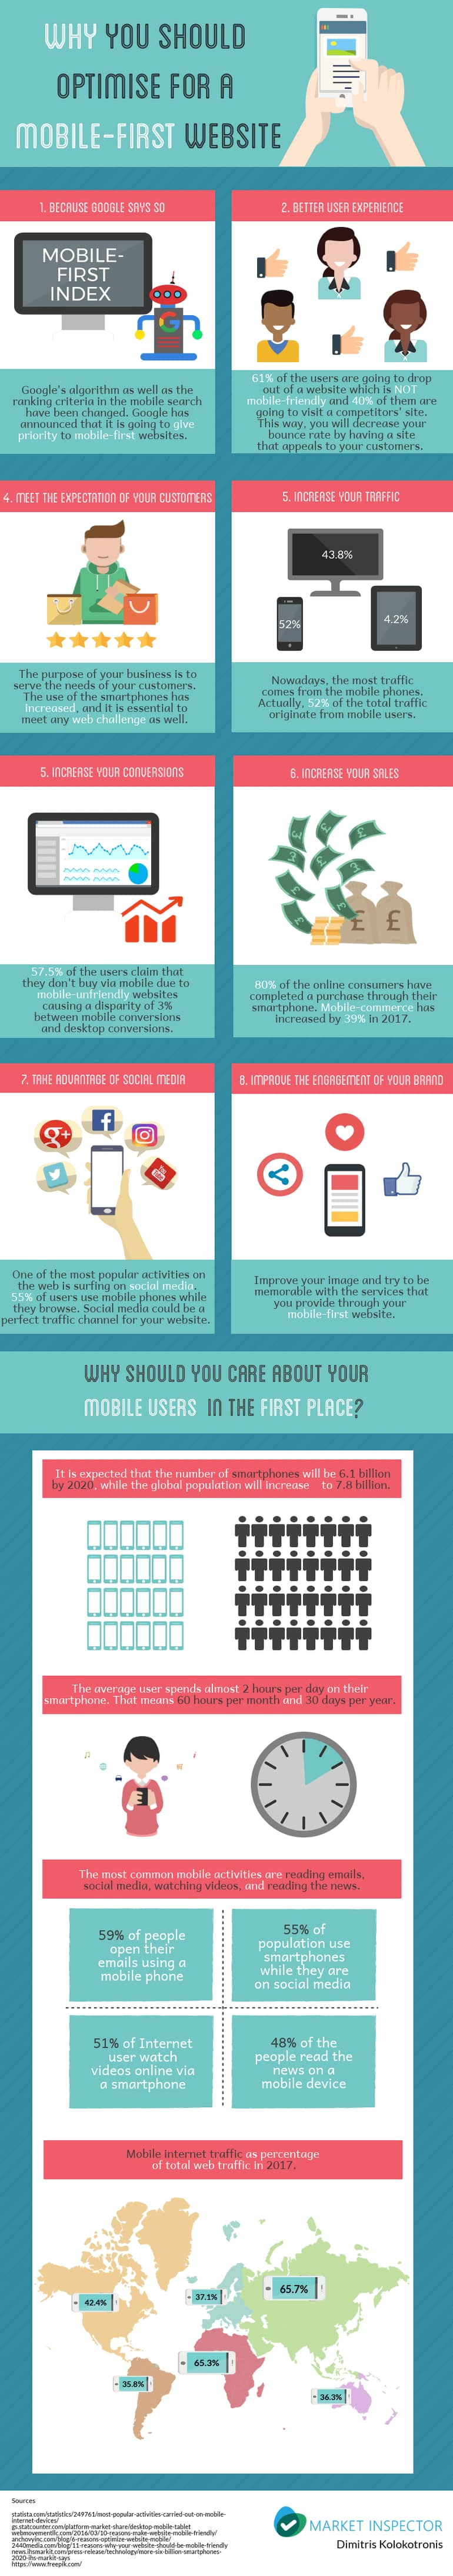 Mobile Frist Infographic